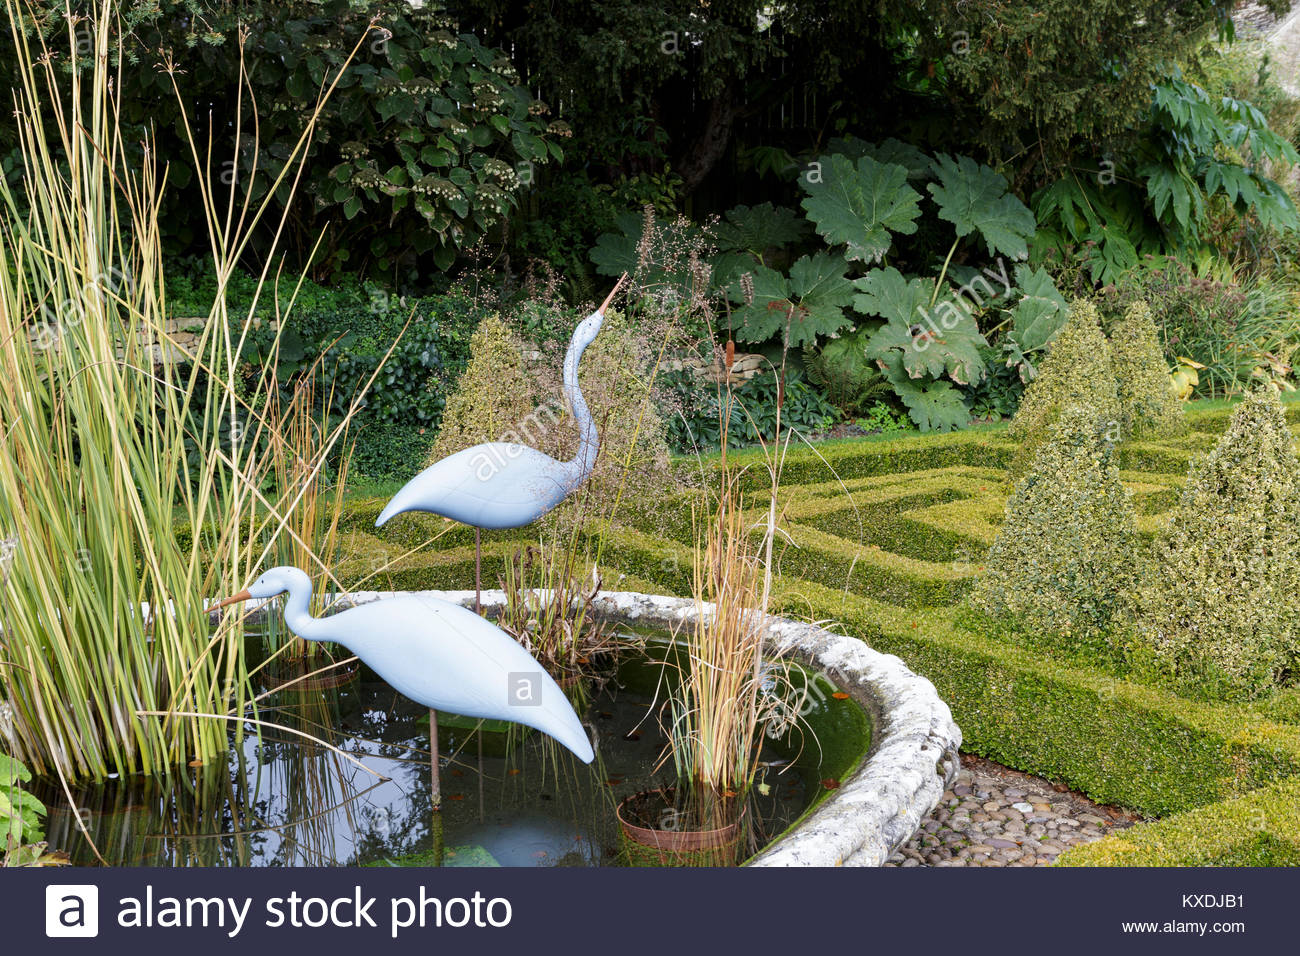 Bourton House Garden, autumn, The formal knot garden with 'Basket' pond - Stock Image